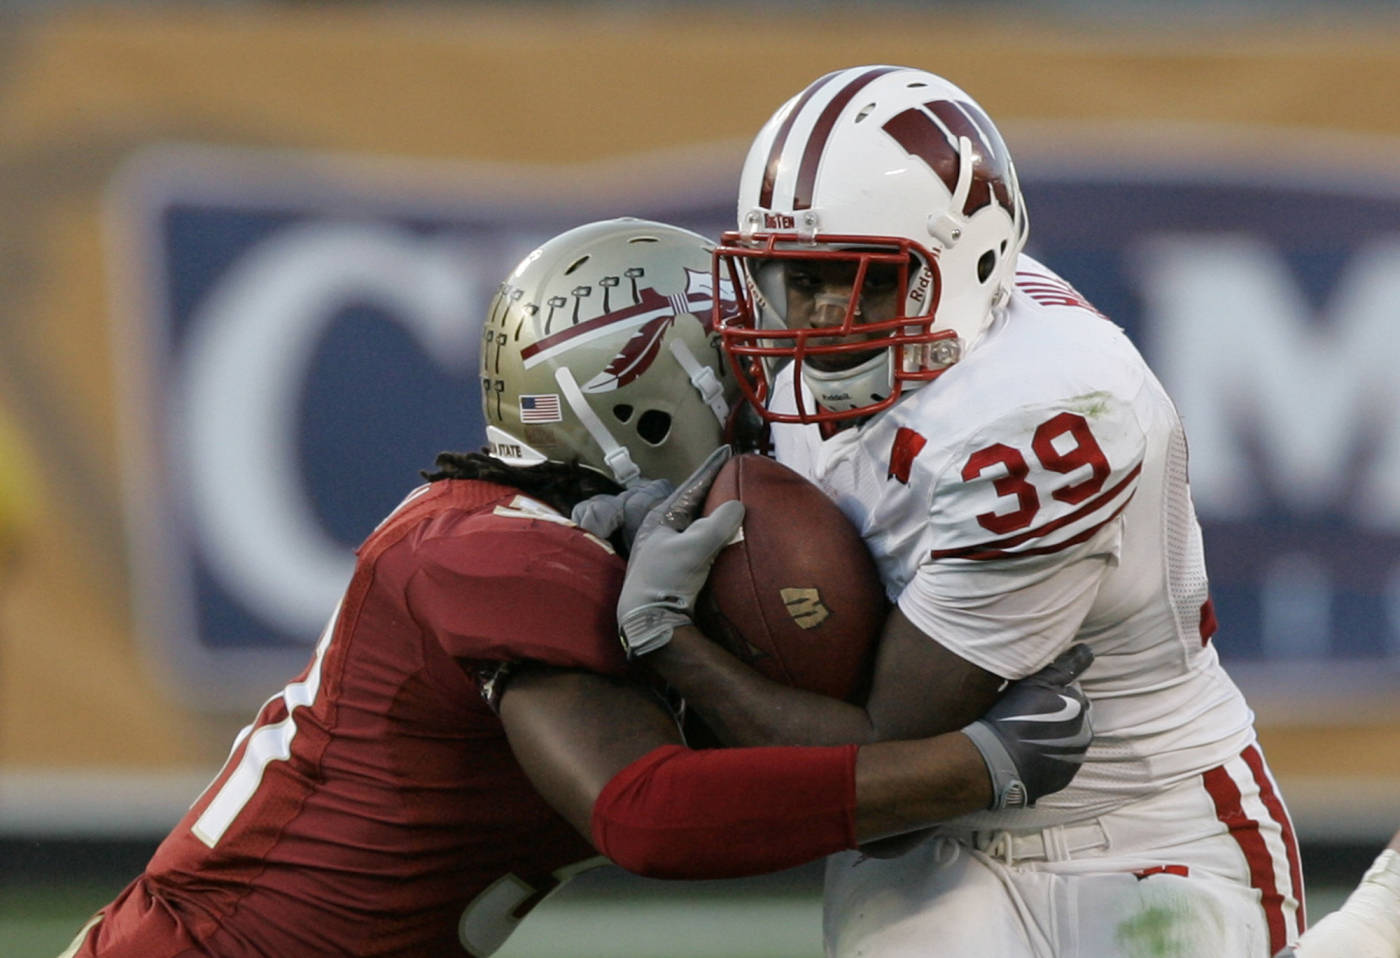 Wisconsin running back P.J. Hill (39) runs for yardage as he is tackled by Florida State linebacker Toddrick Verdell during the first half.(AP Photo/John Raoux)